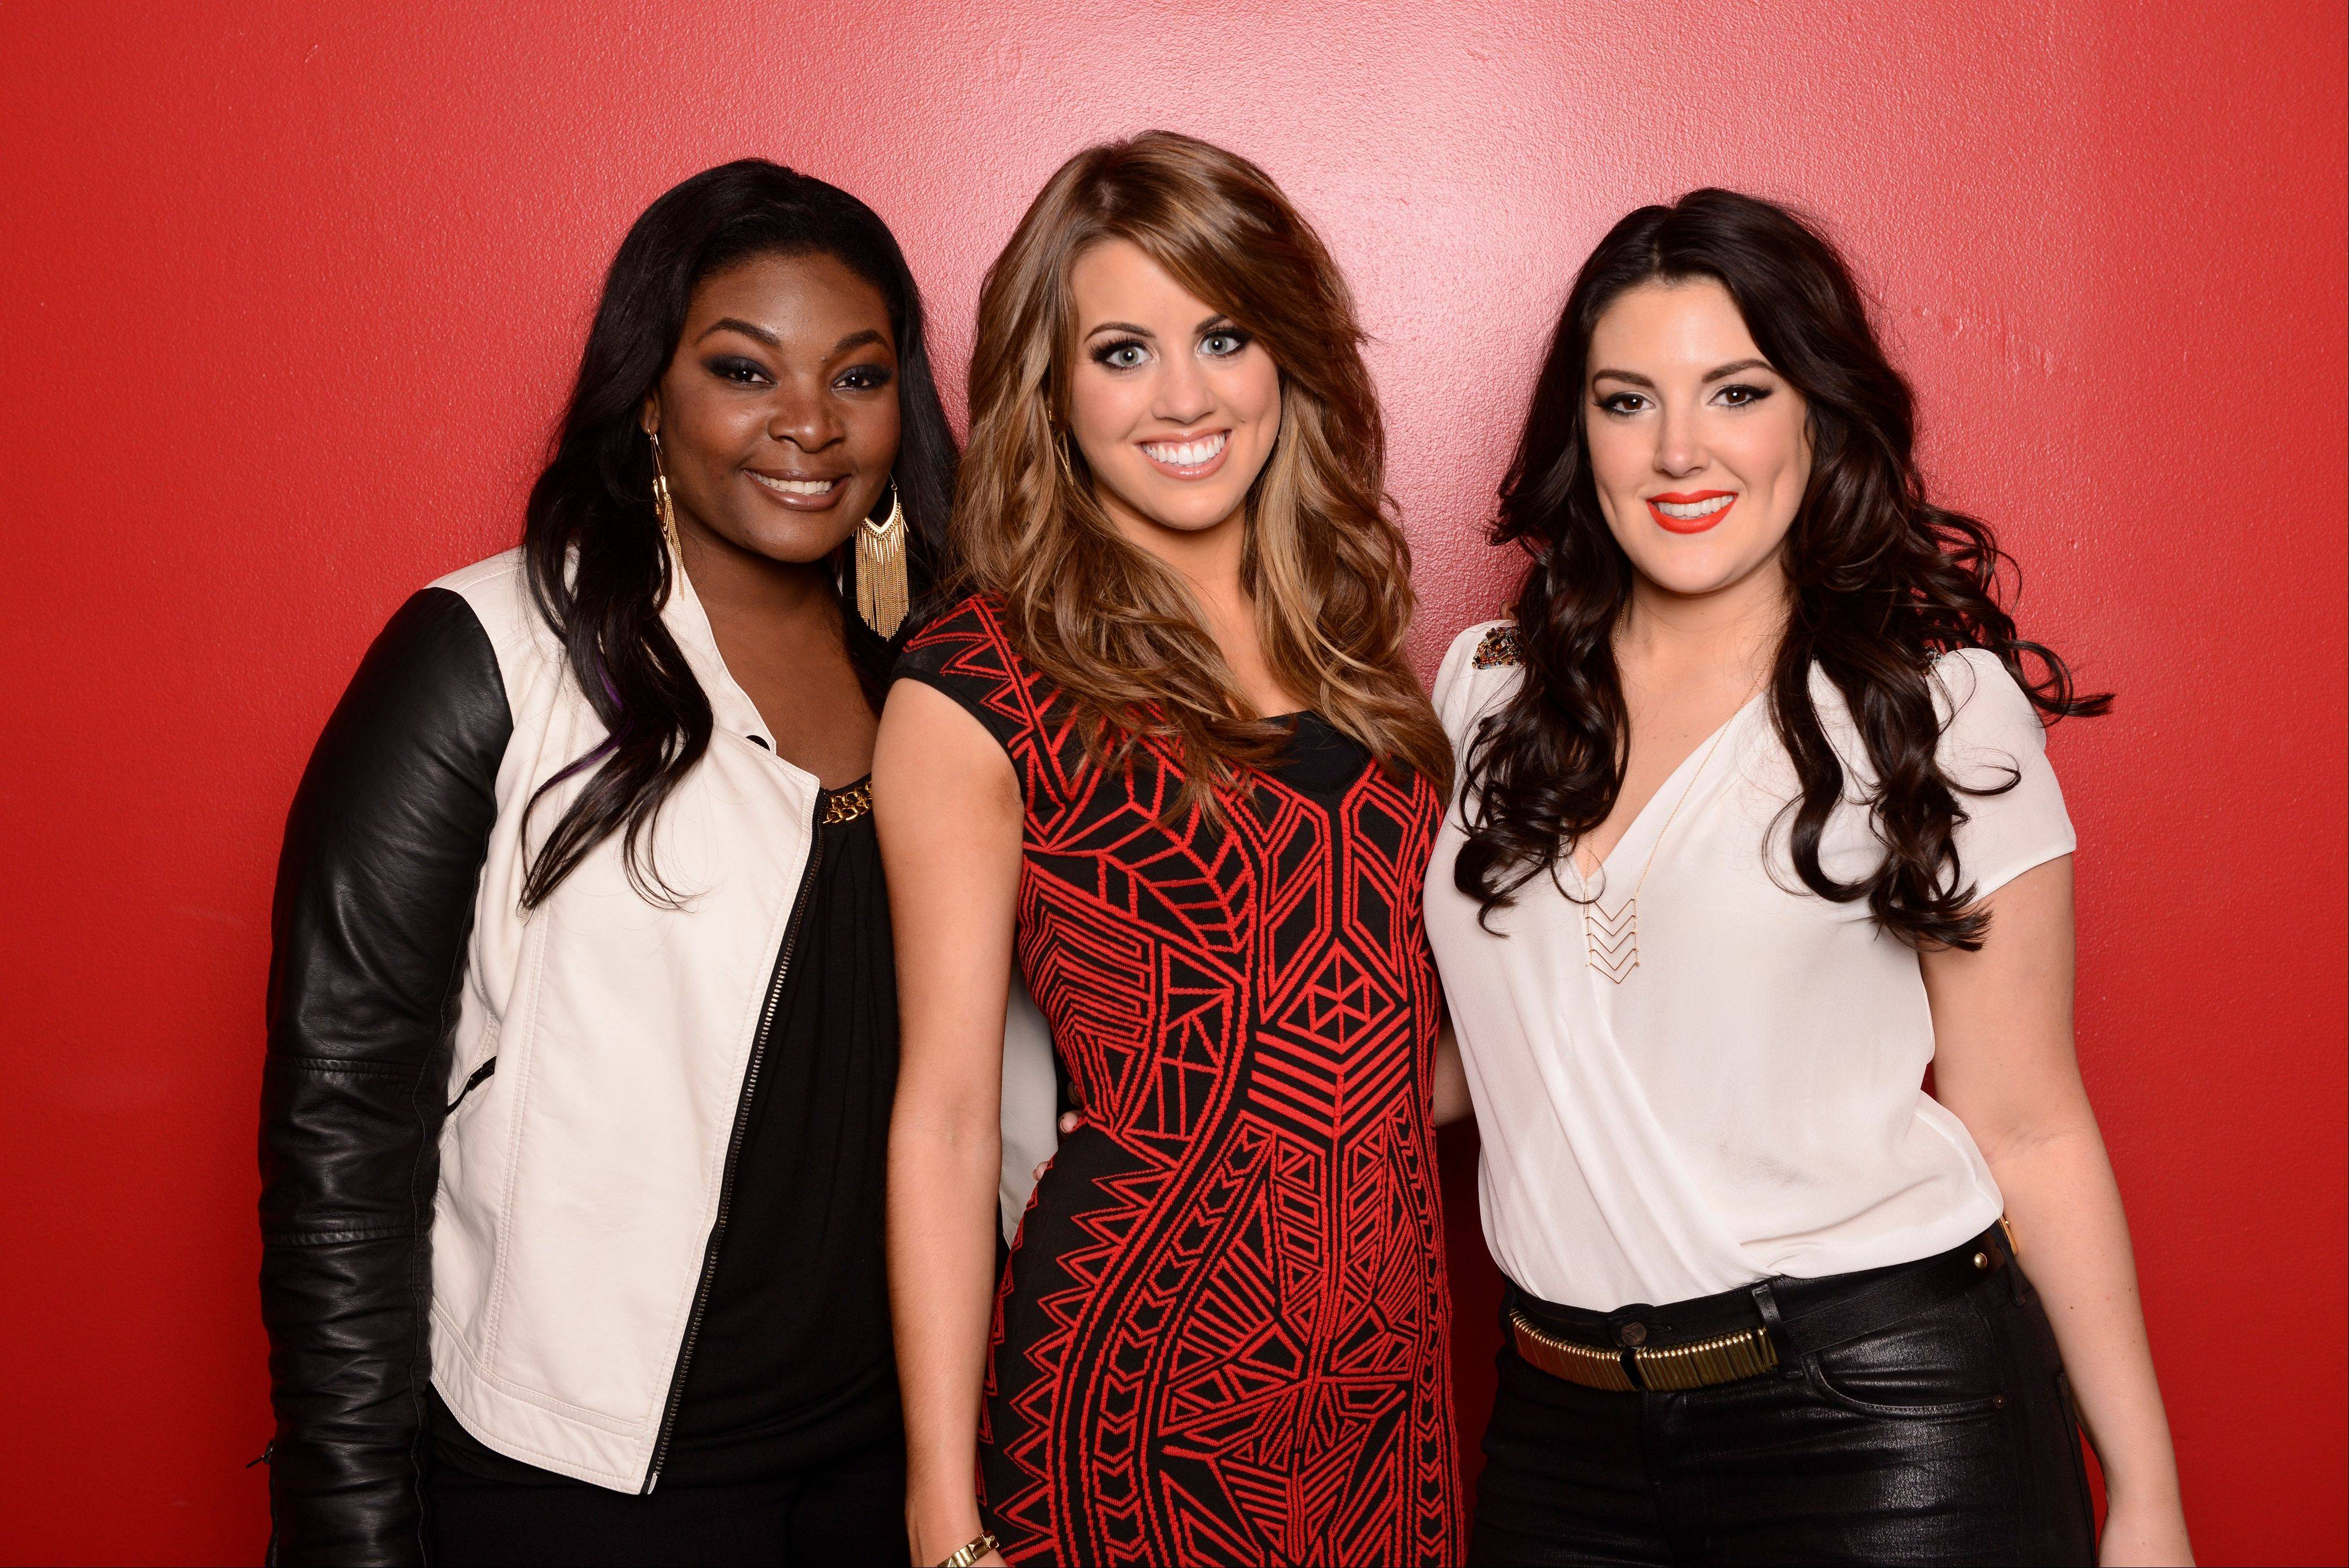 'American Idol' down to final 2 singers